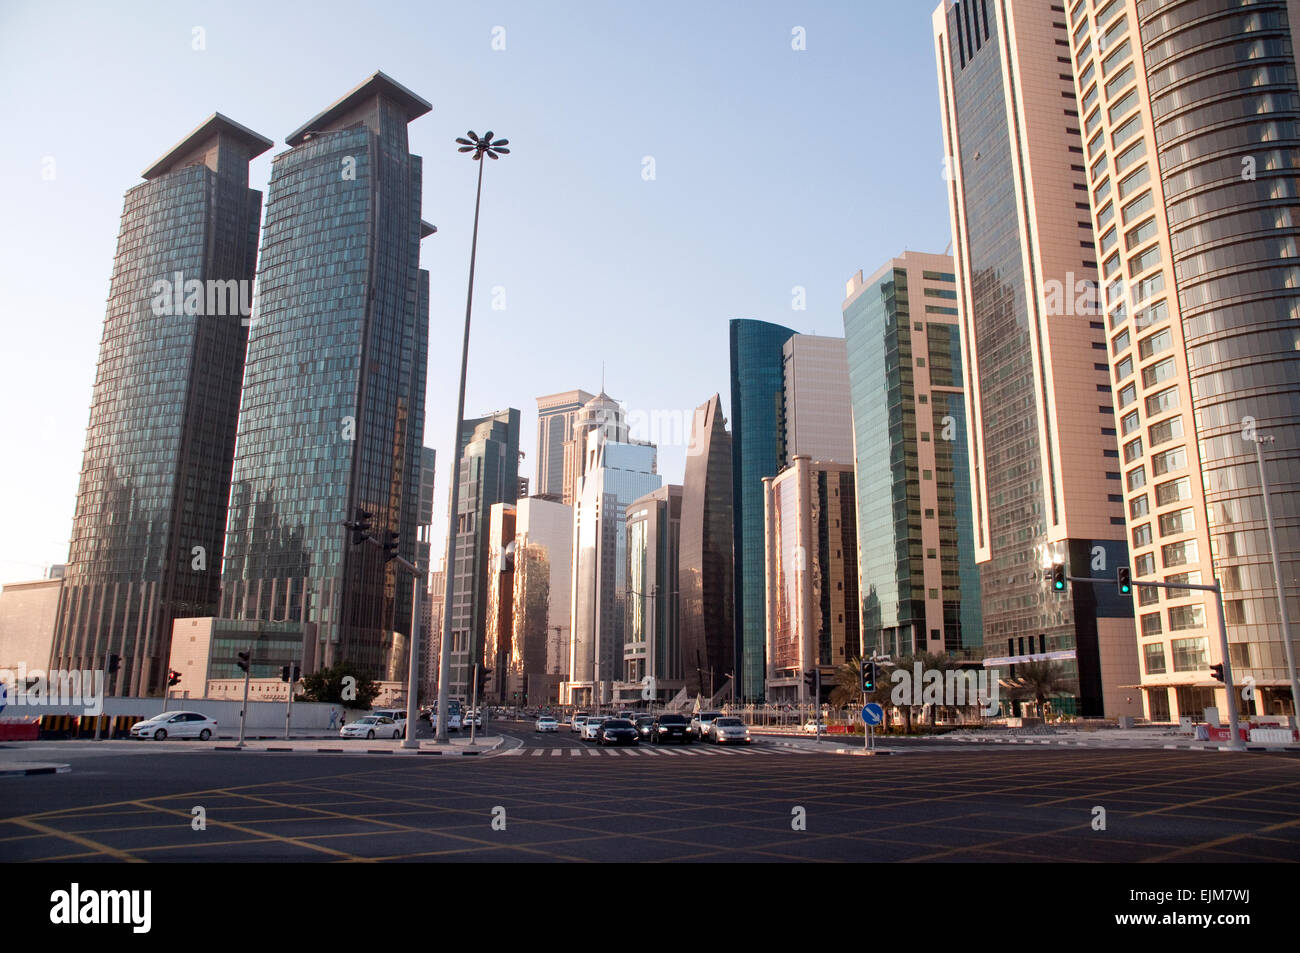 A cluster of residential and office towers on a main avenue in the city of Doha, in the Middle Eastern Gulf nation - Stock Image